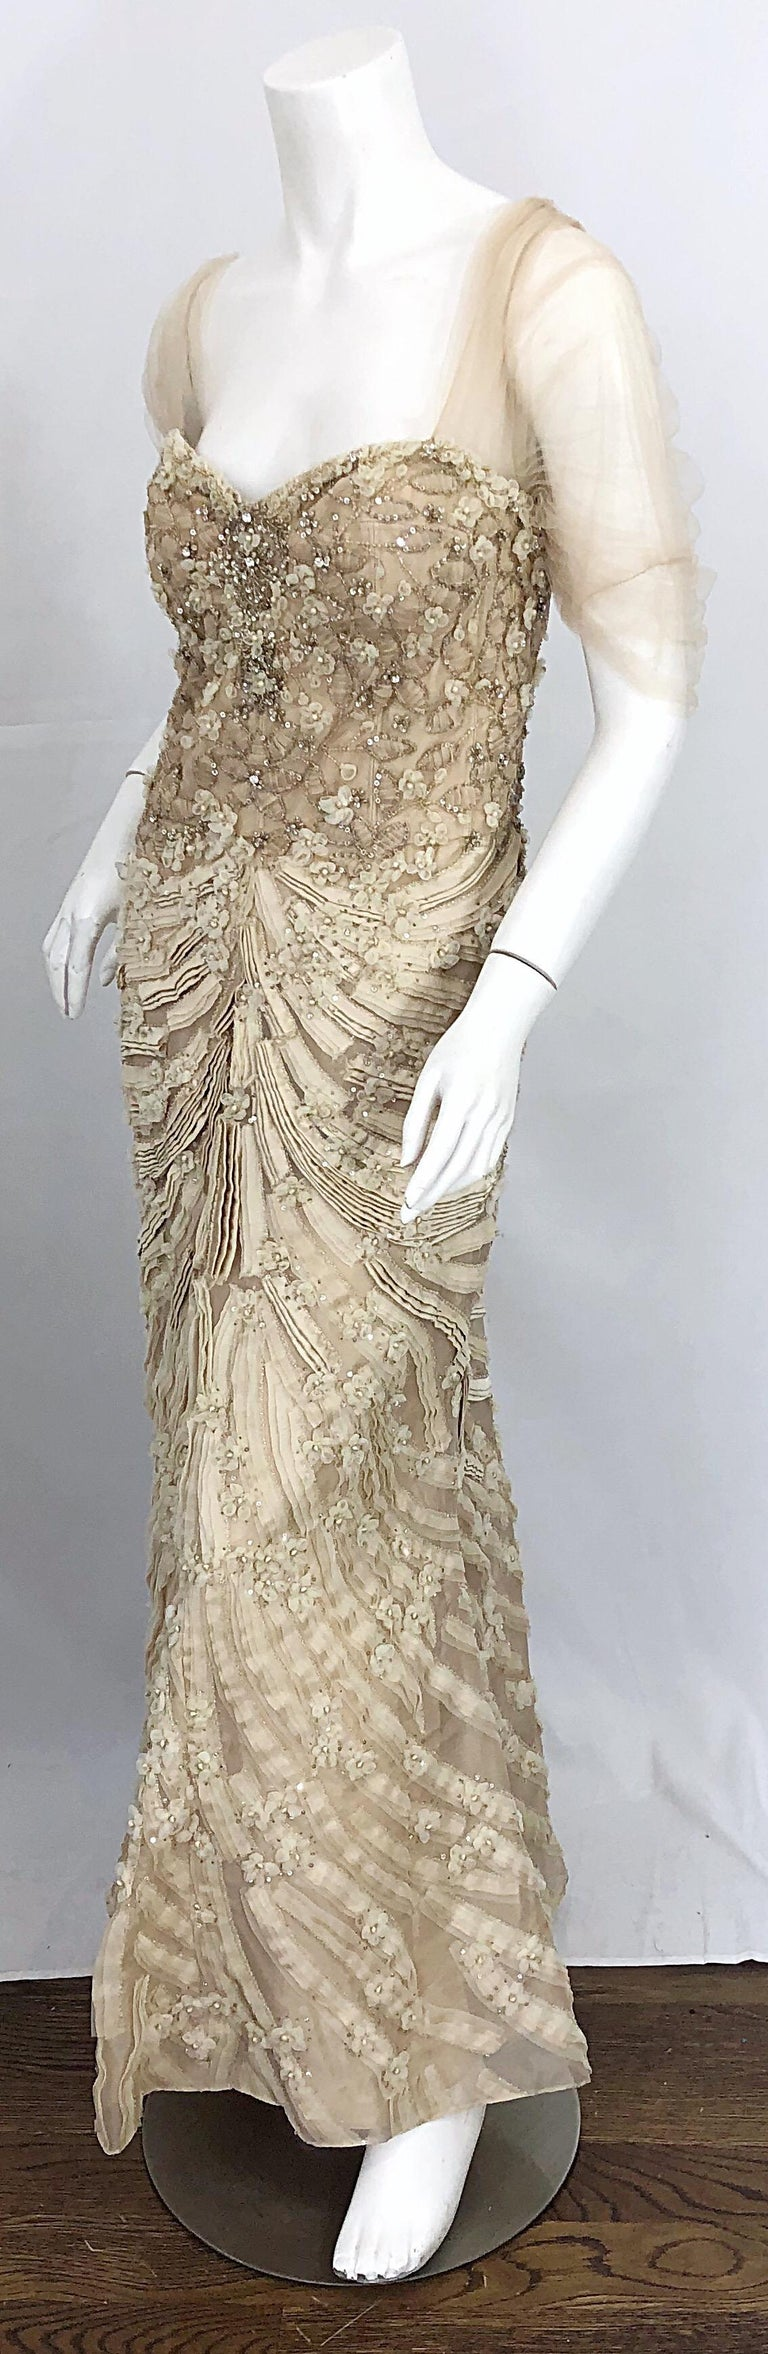 Monique Lhuillier Couture Size 10 / 12 Beige Rhinestone Beaded $12,000 Silk Gown For Sale 3